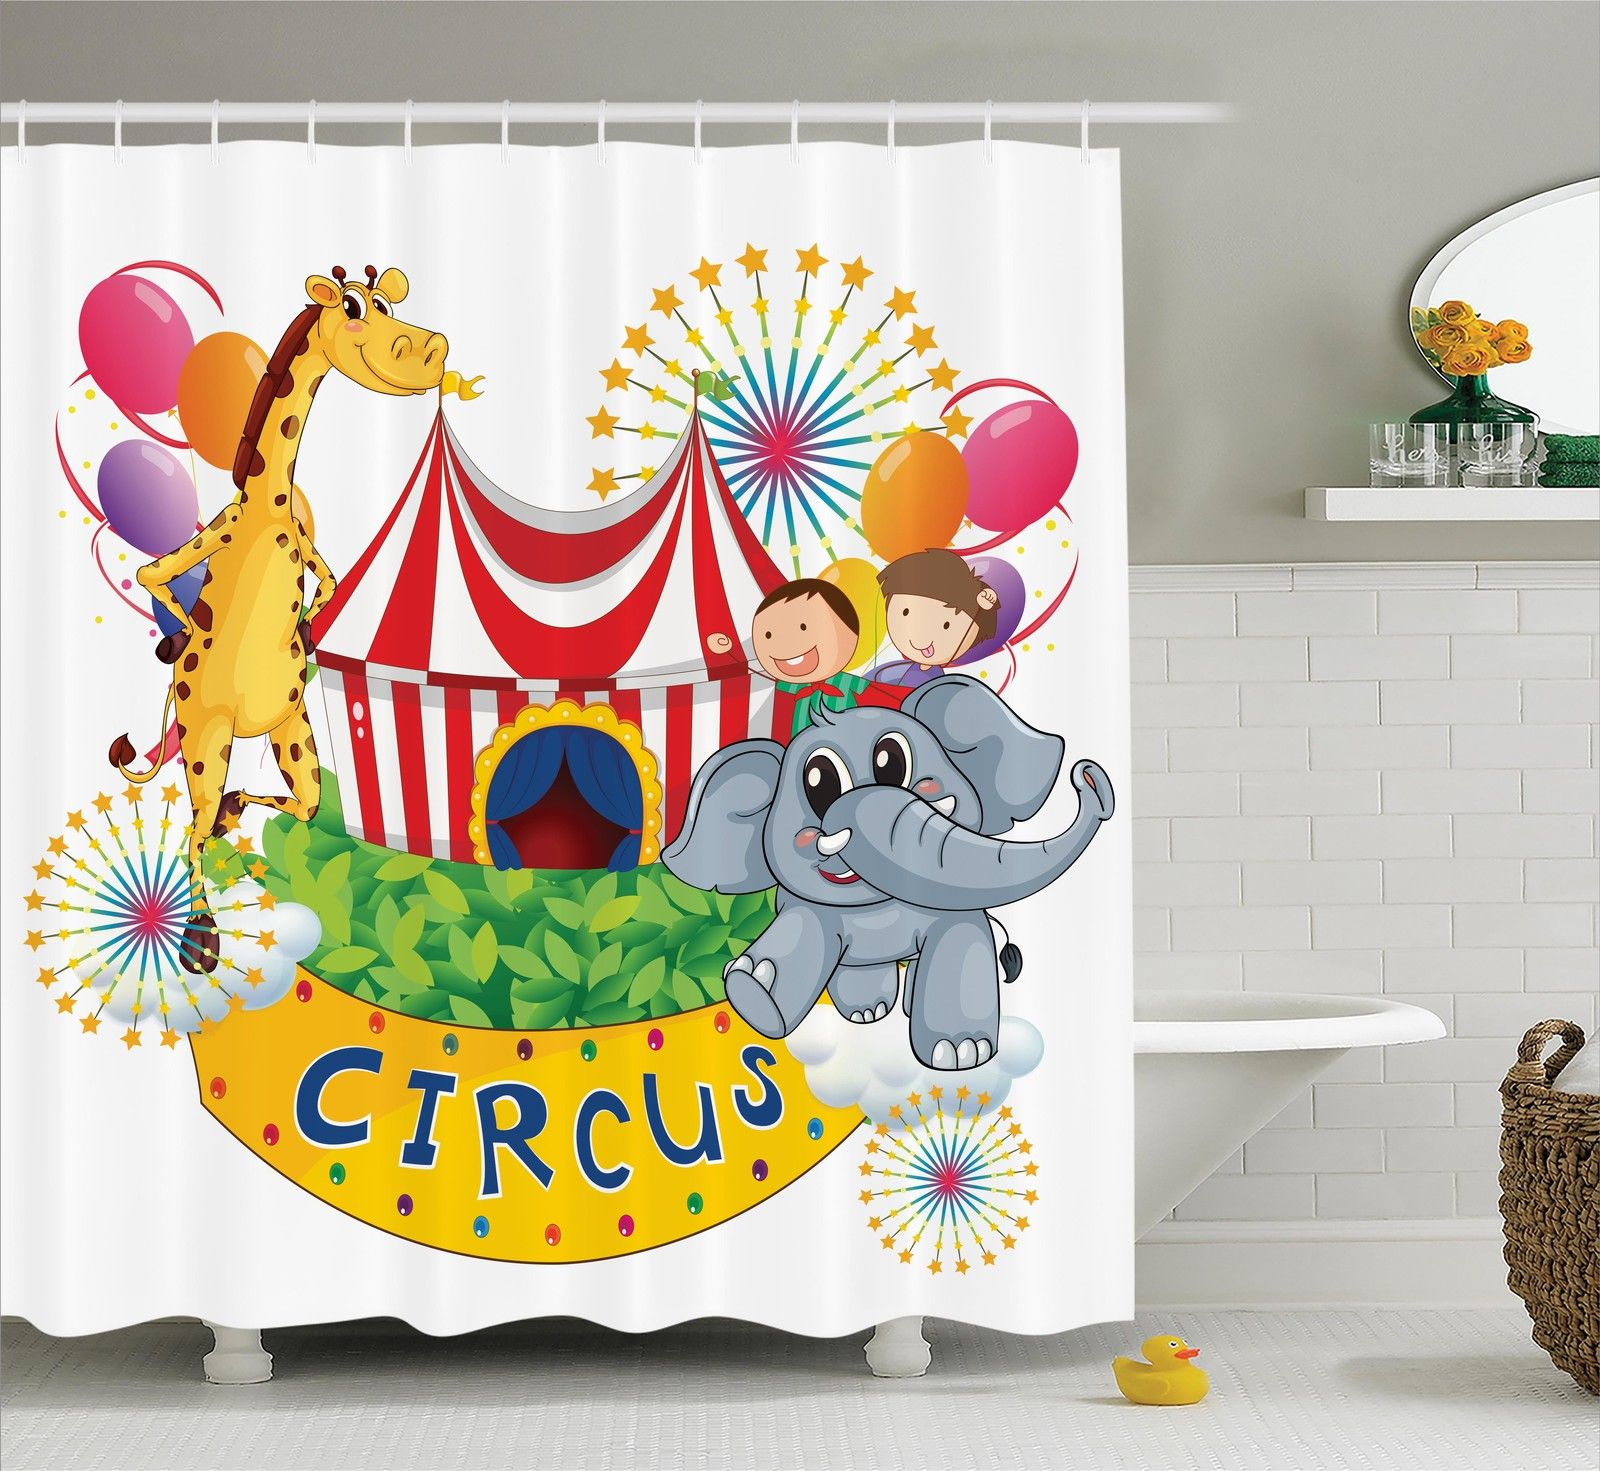 Circus Decor Shower Curtain Set, Circus Show With Kids And Animals Smiling  Magician Children Happiness